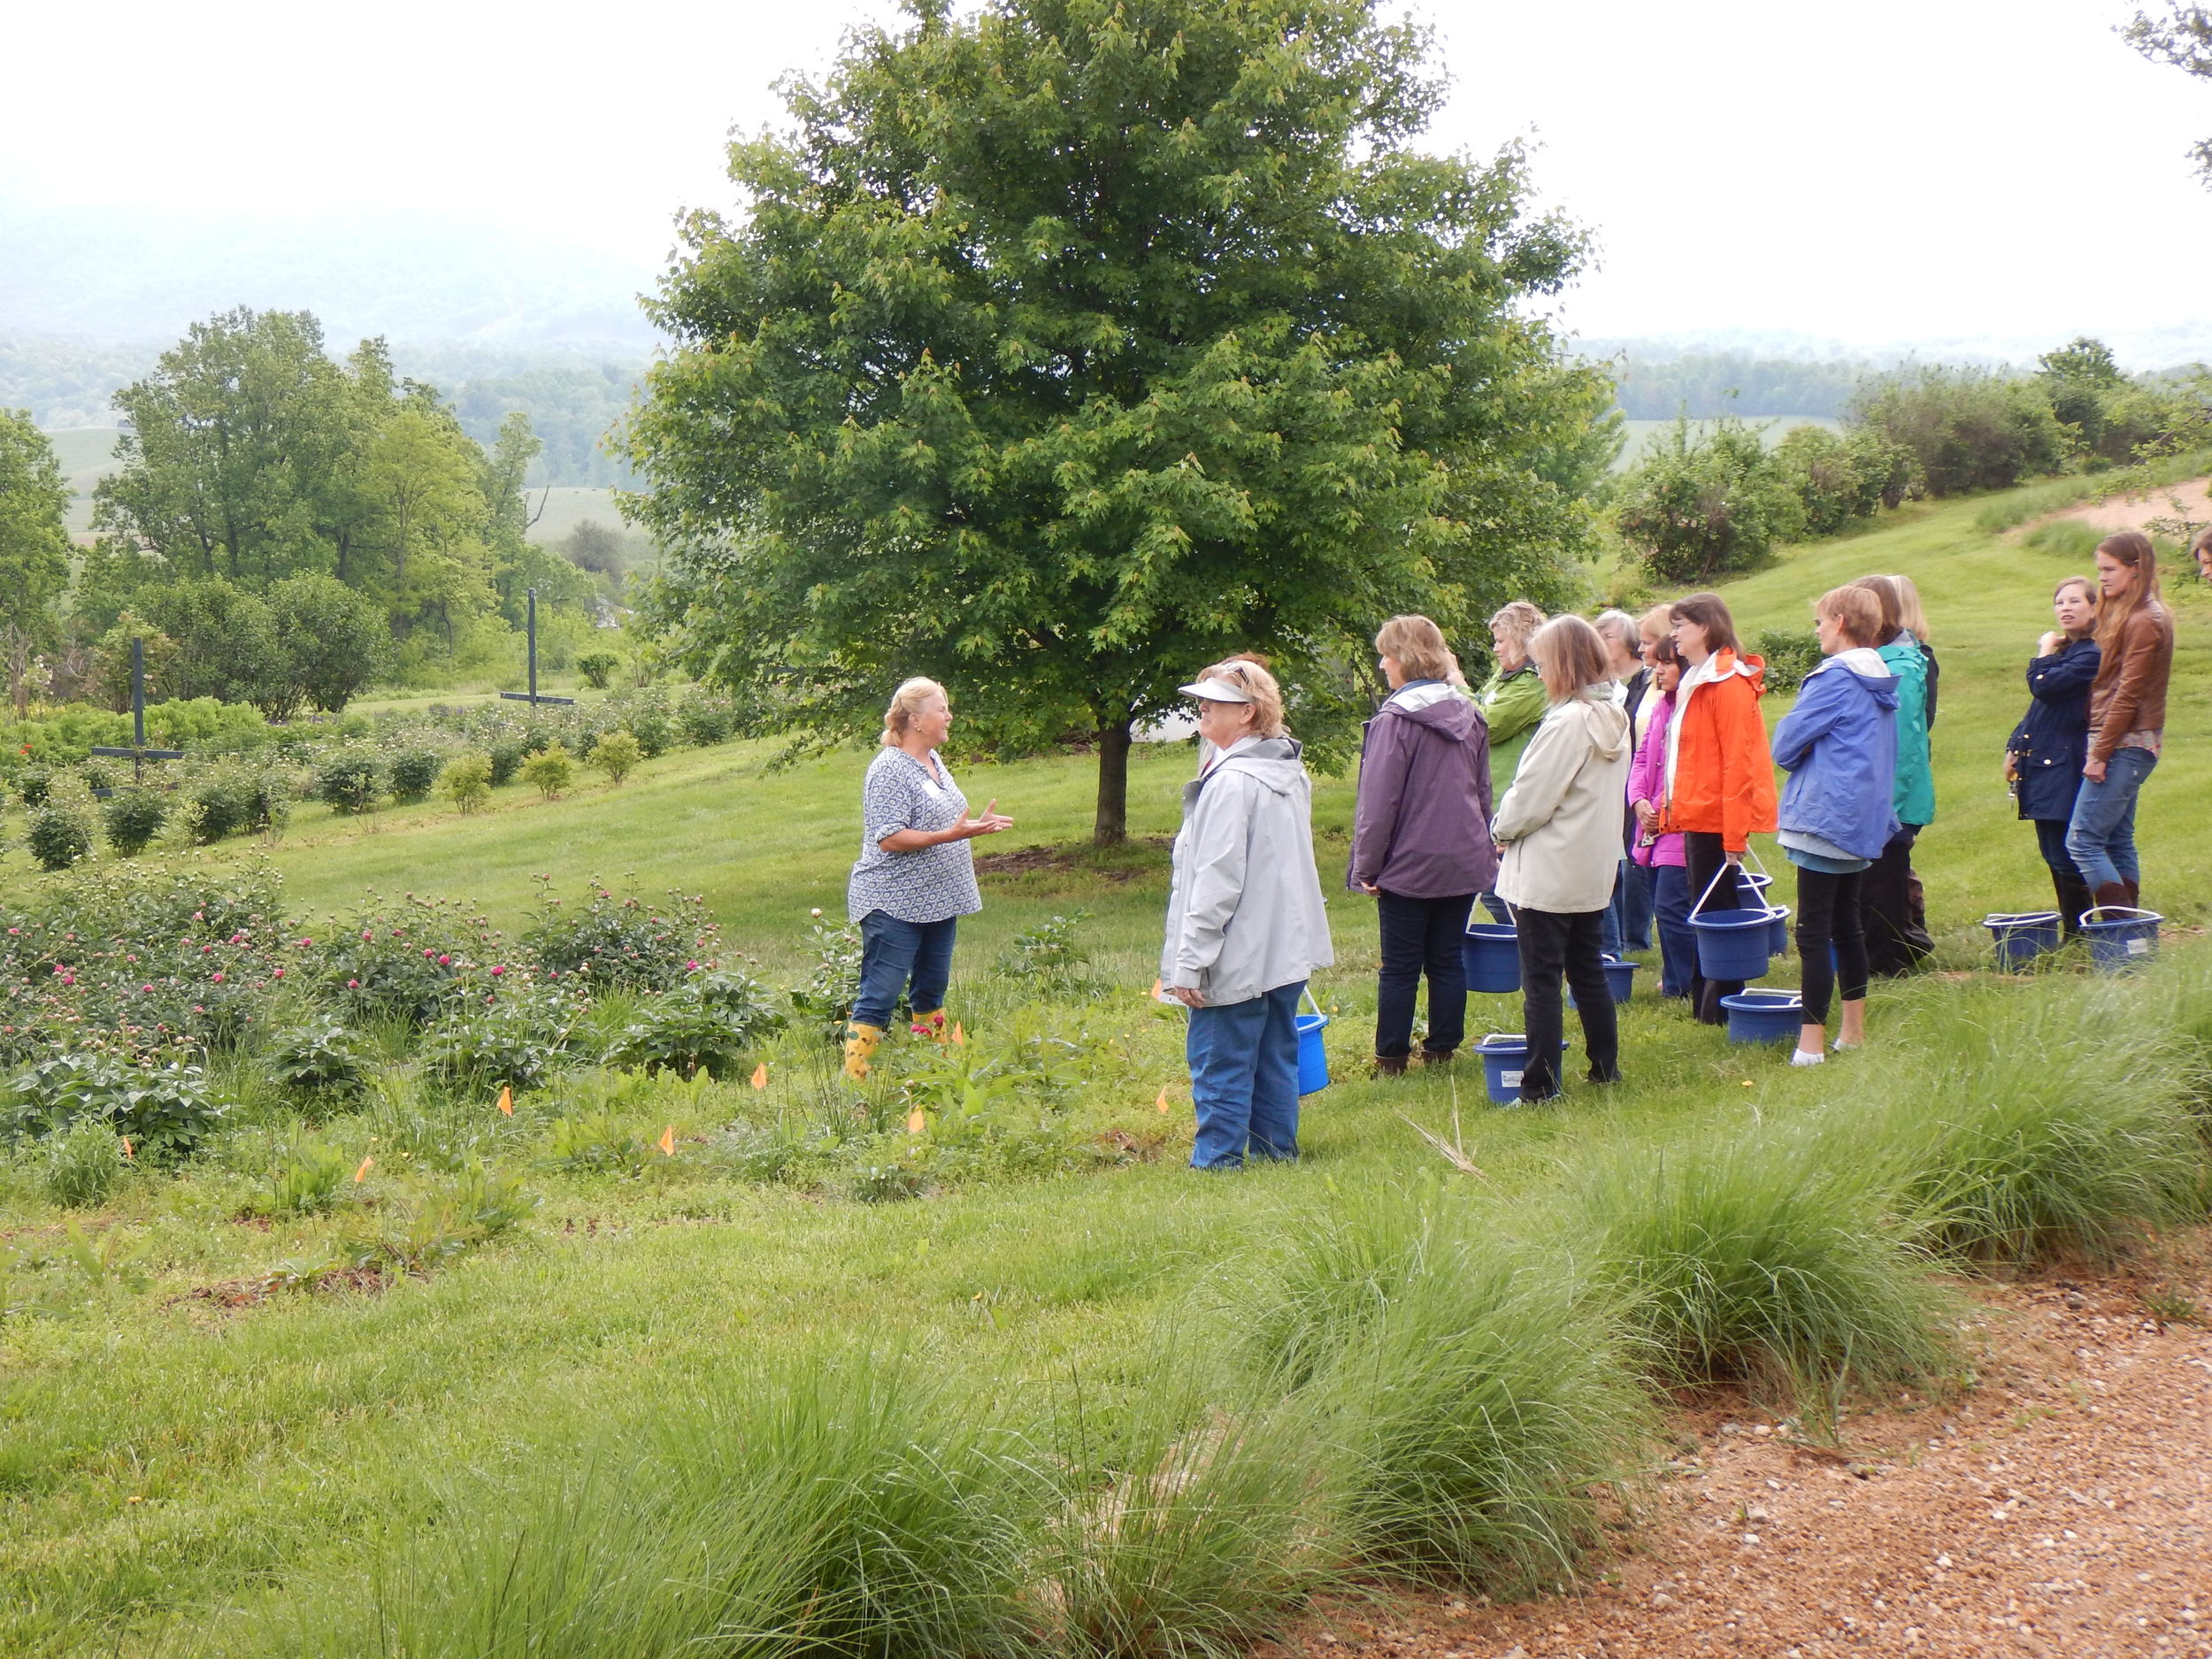 Turning Peony class loose in the field.